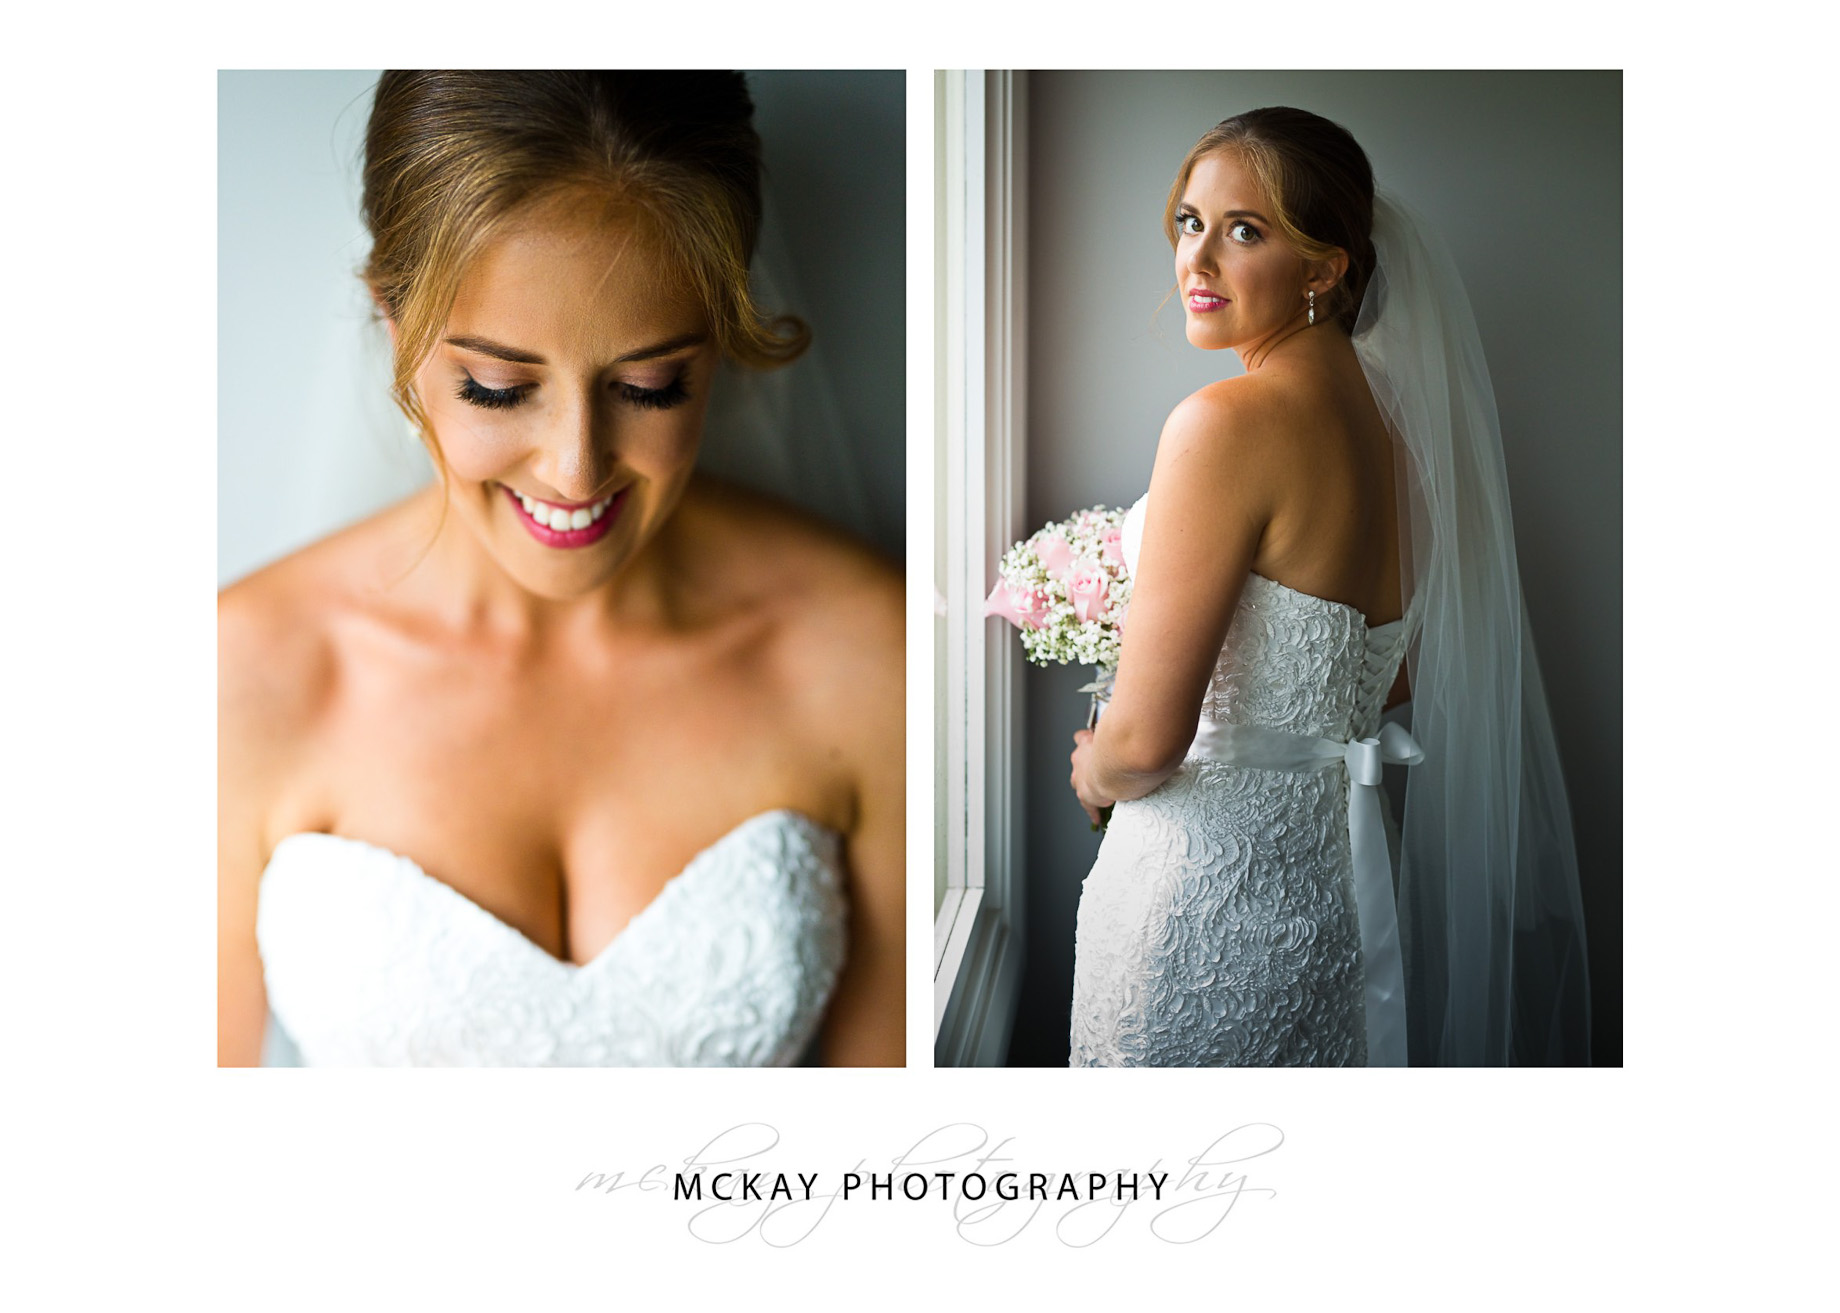 Bride dress and portrait photo at Peppers Craigieburn wedding in Bowral